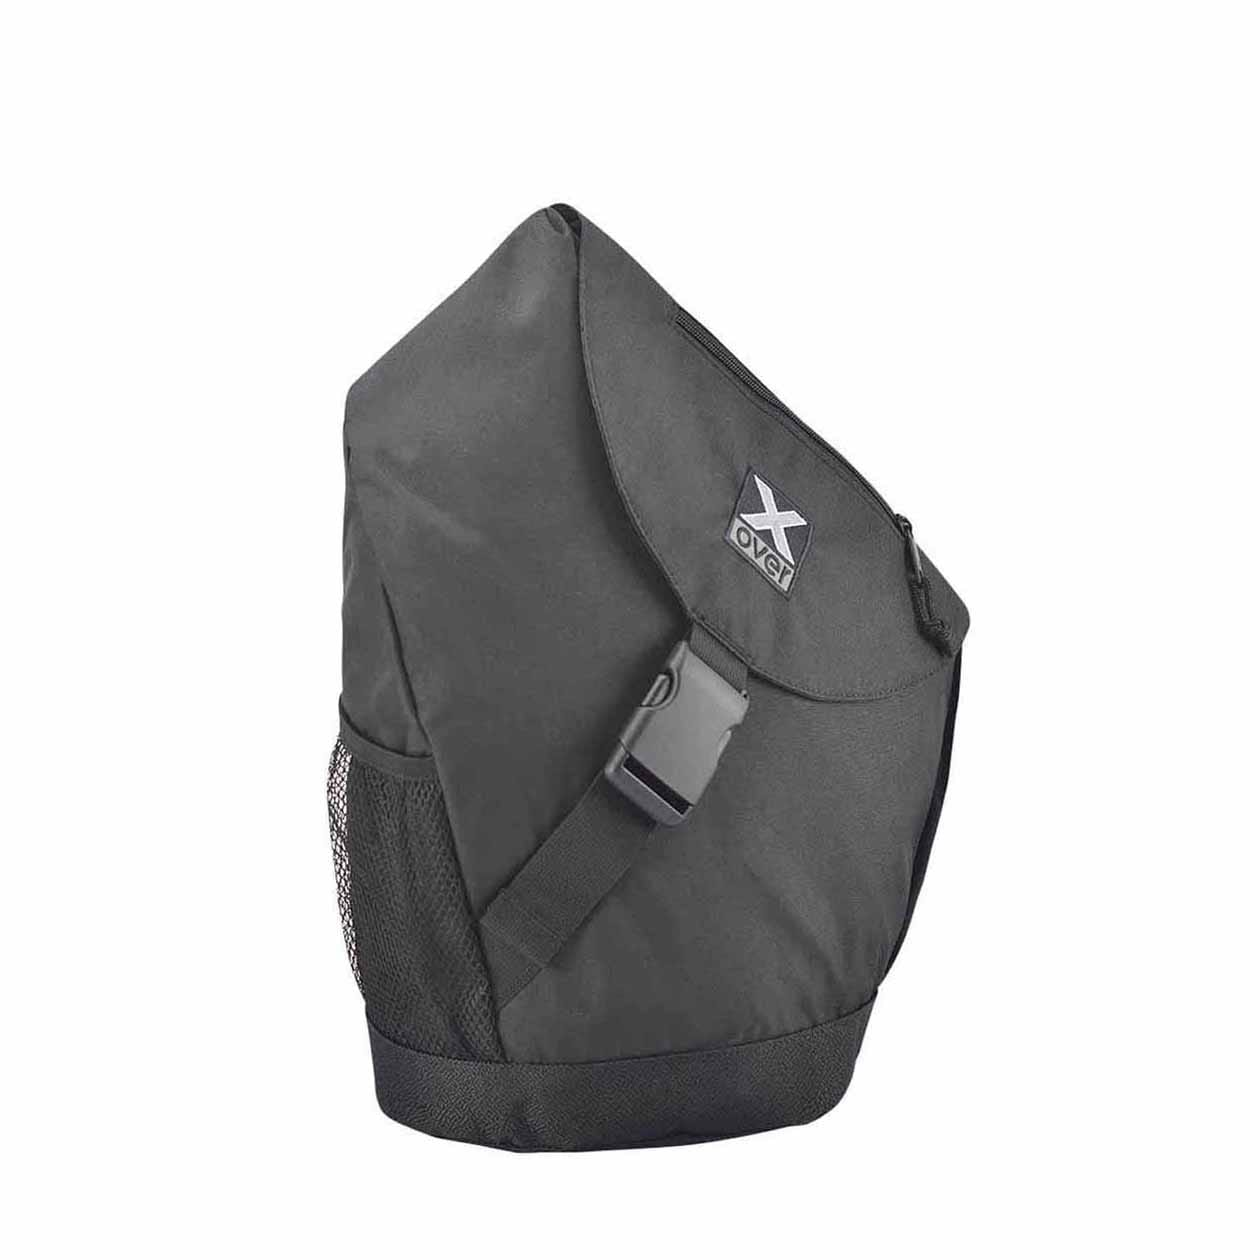 x-over schuine rugzak original amsterdam black medium